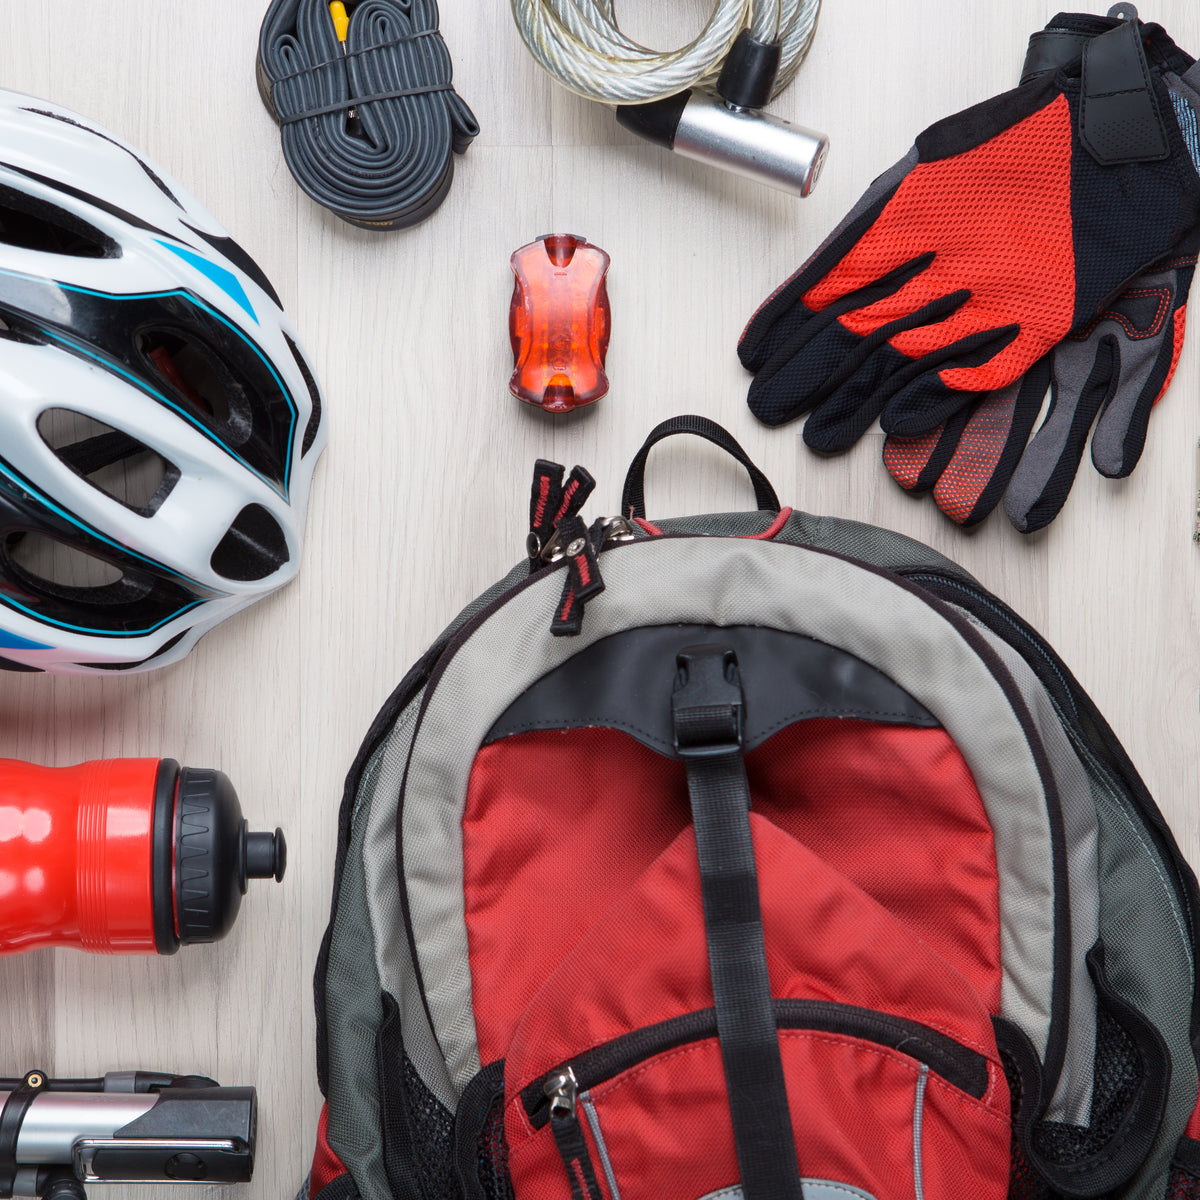 What Are The Best Bike Accessories For Summer Riding?